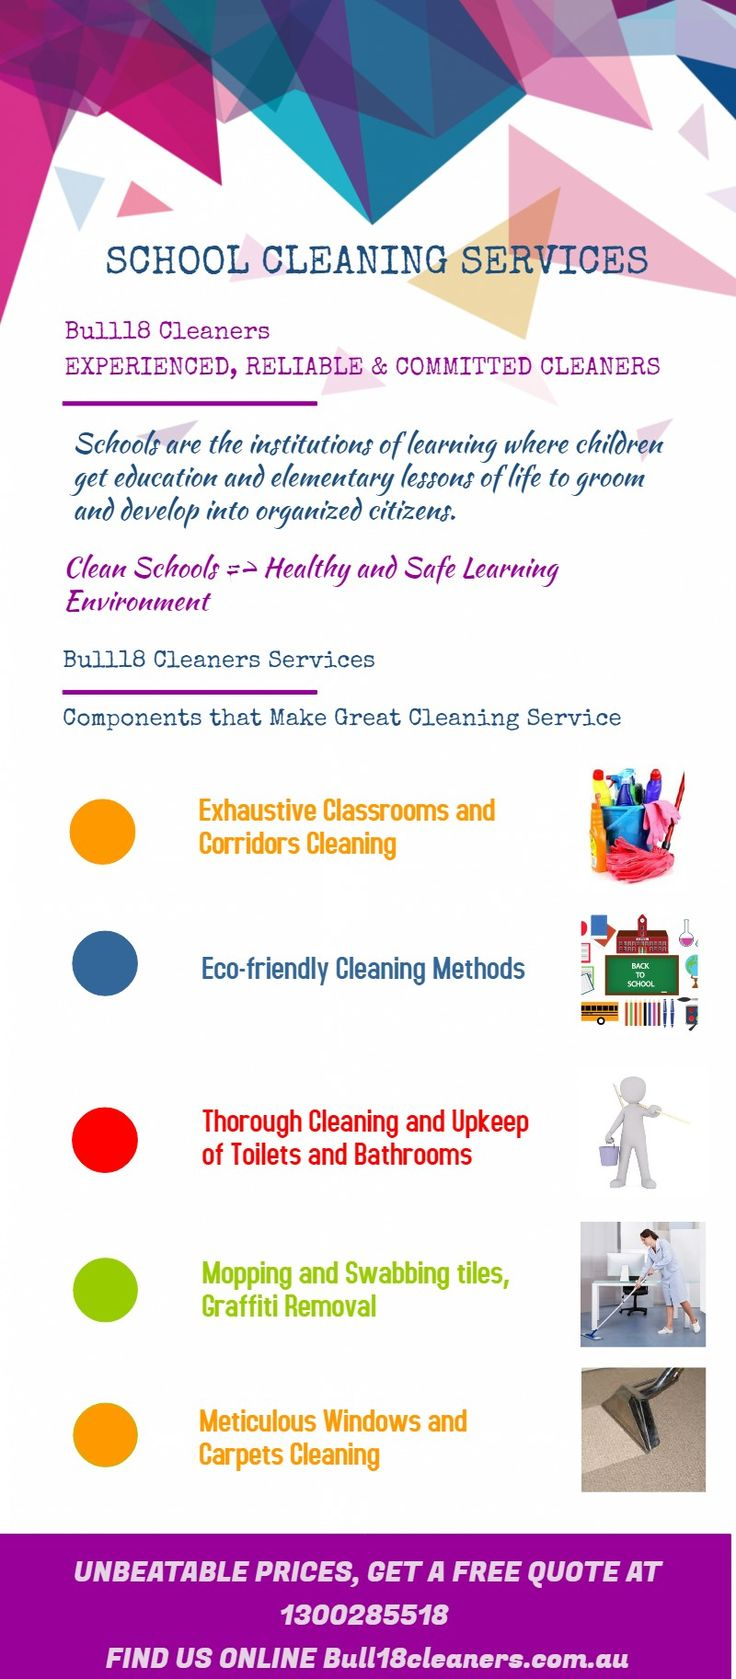 Schools are the institutions of learning where children get education and elementary lessons of life to groom and develop into organized citizens. Get school cleaning services with Bull18 Cleaners.